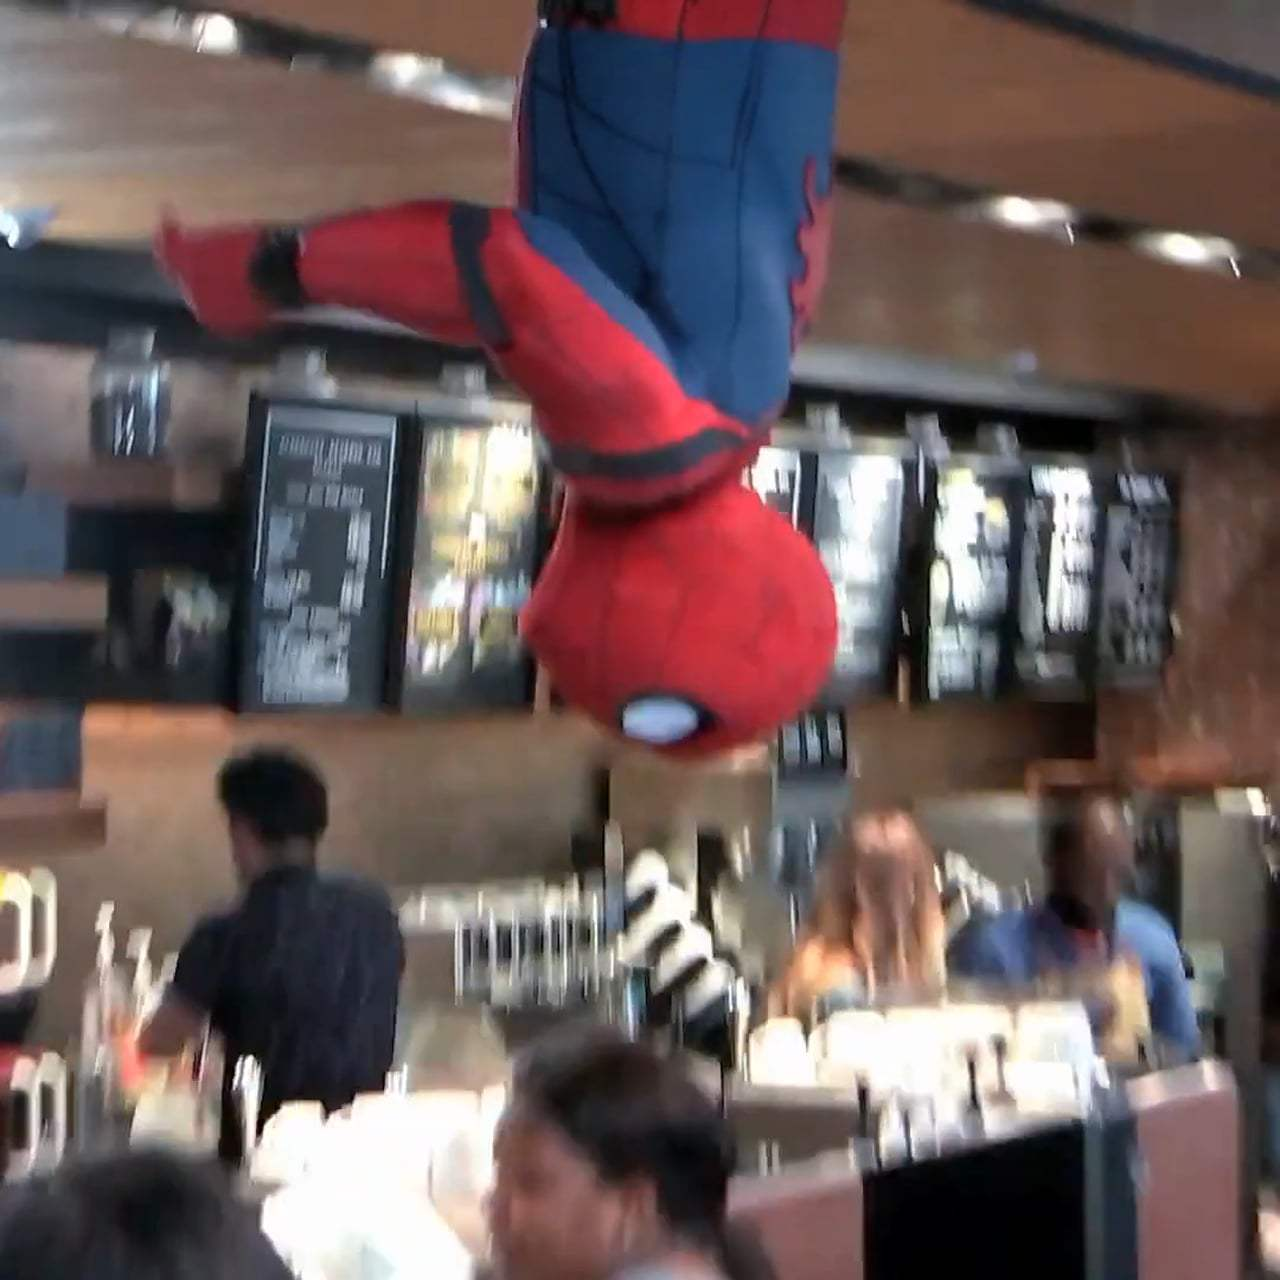 Spider-Man: Homecoming Viral - New York City Starbucks (2017) Screen Capture #1